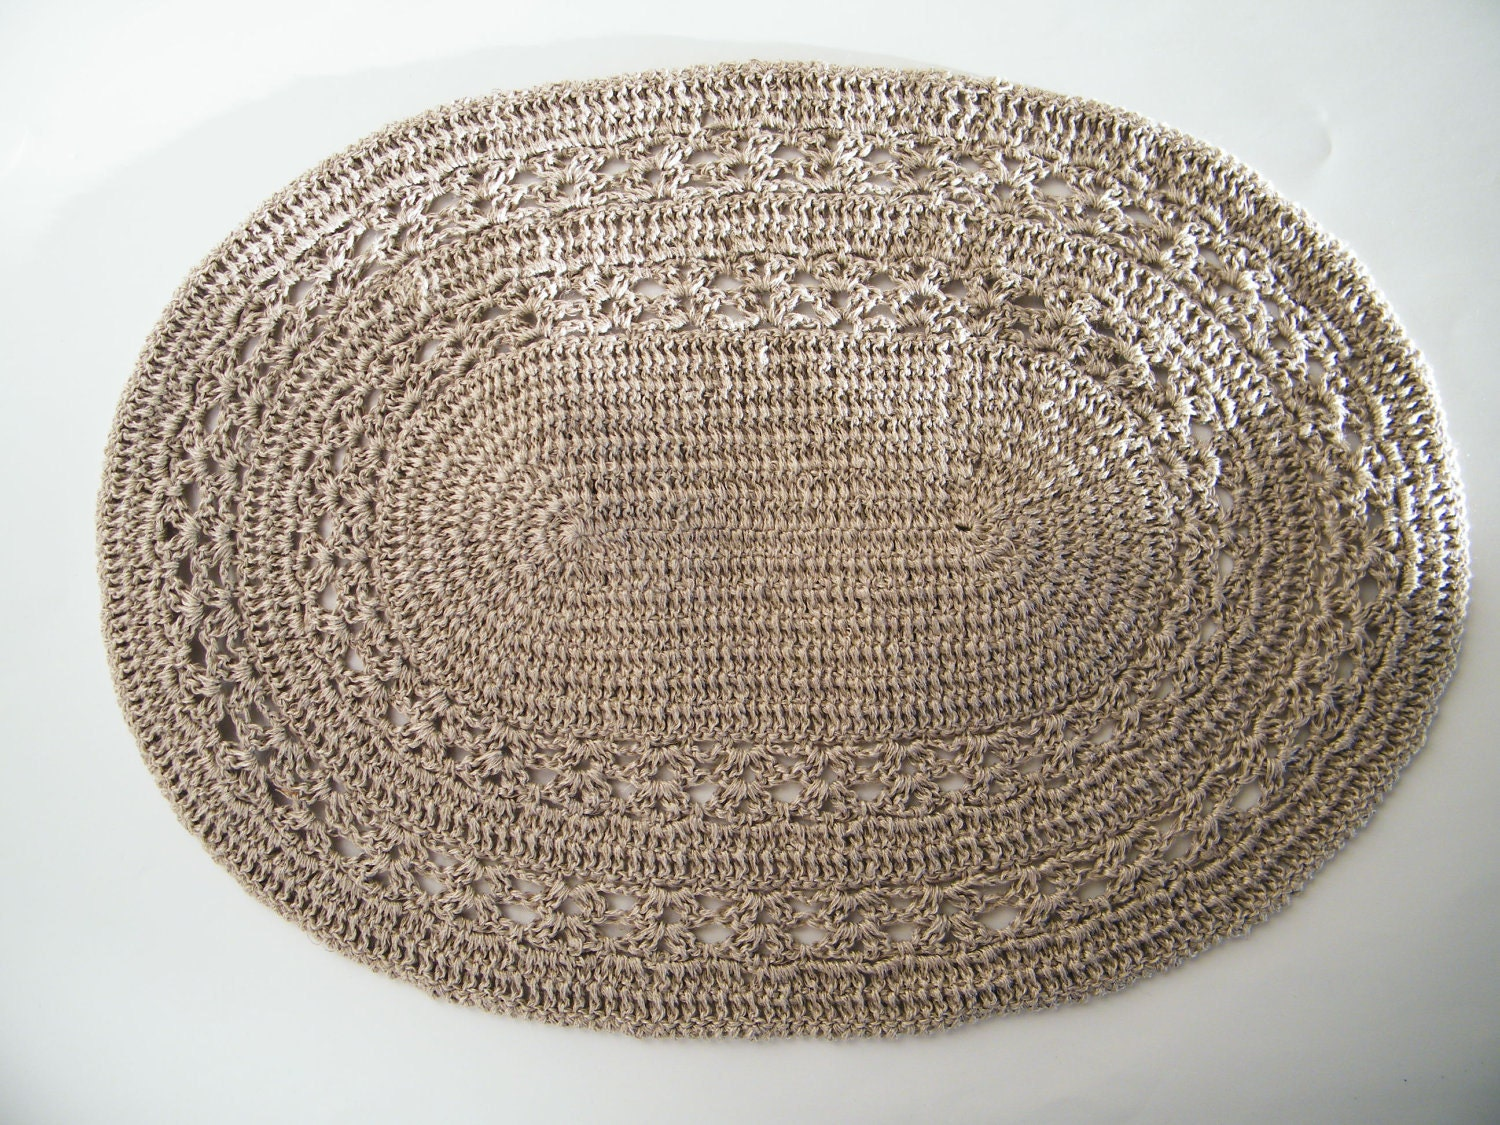 4 natural linen crochet oval placemats table linen kitchen for Table placemats